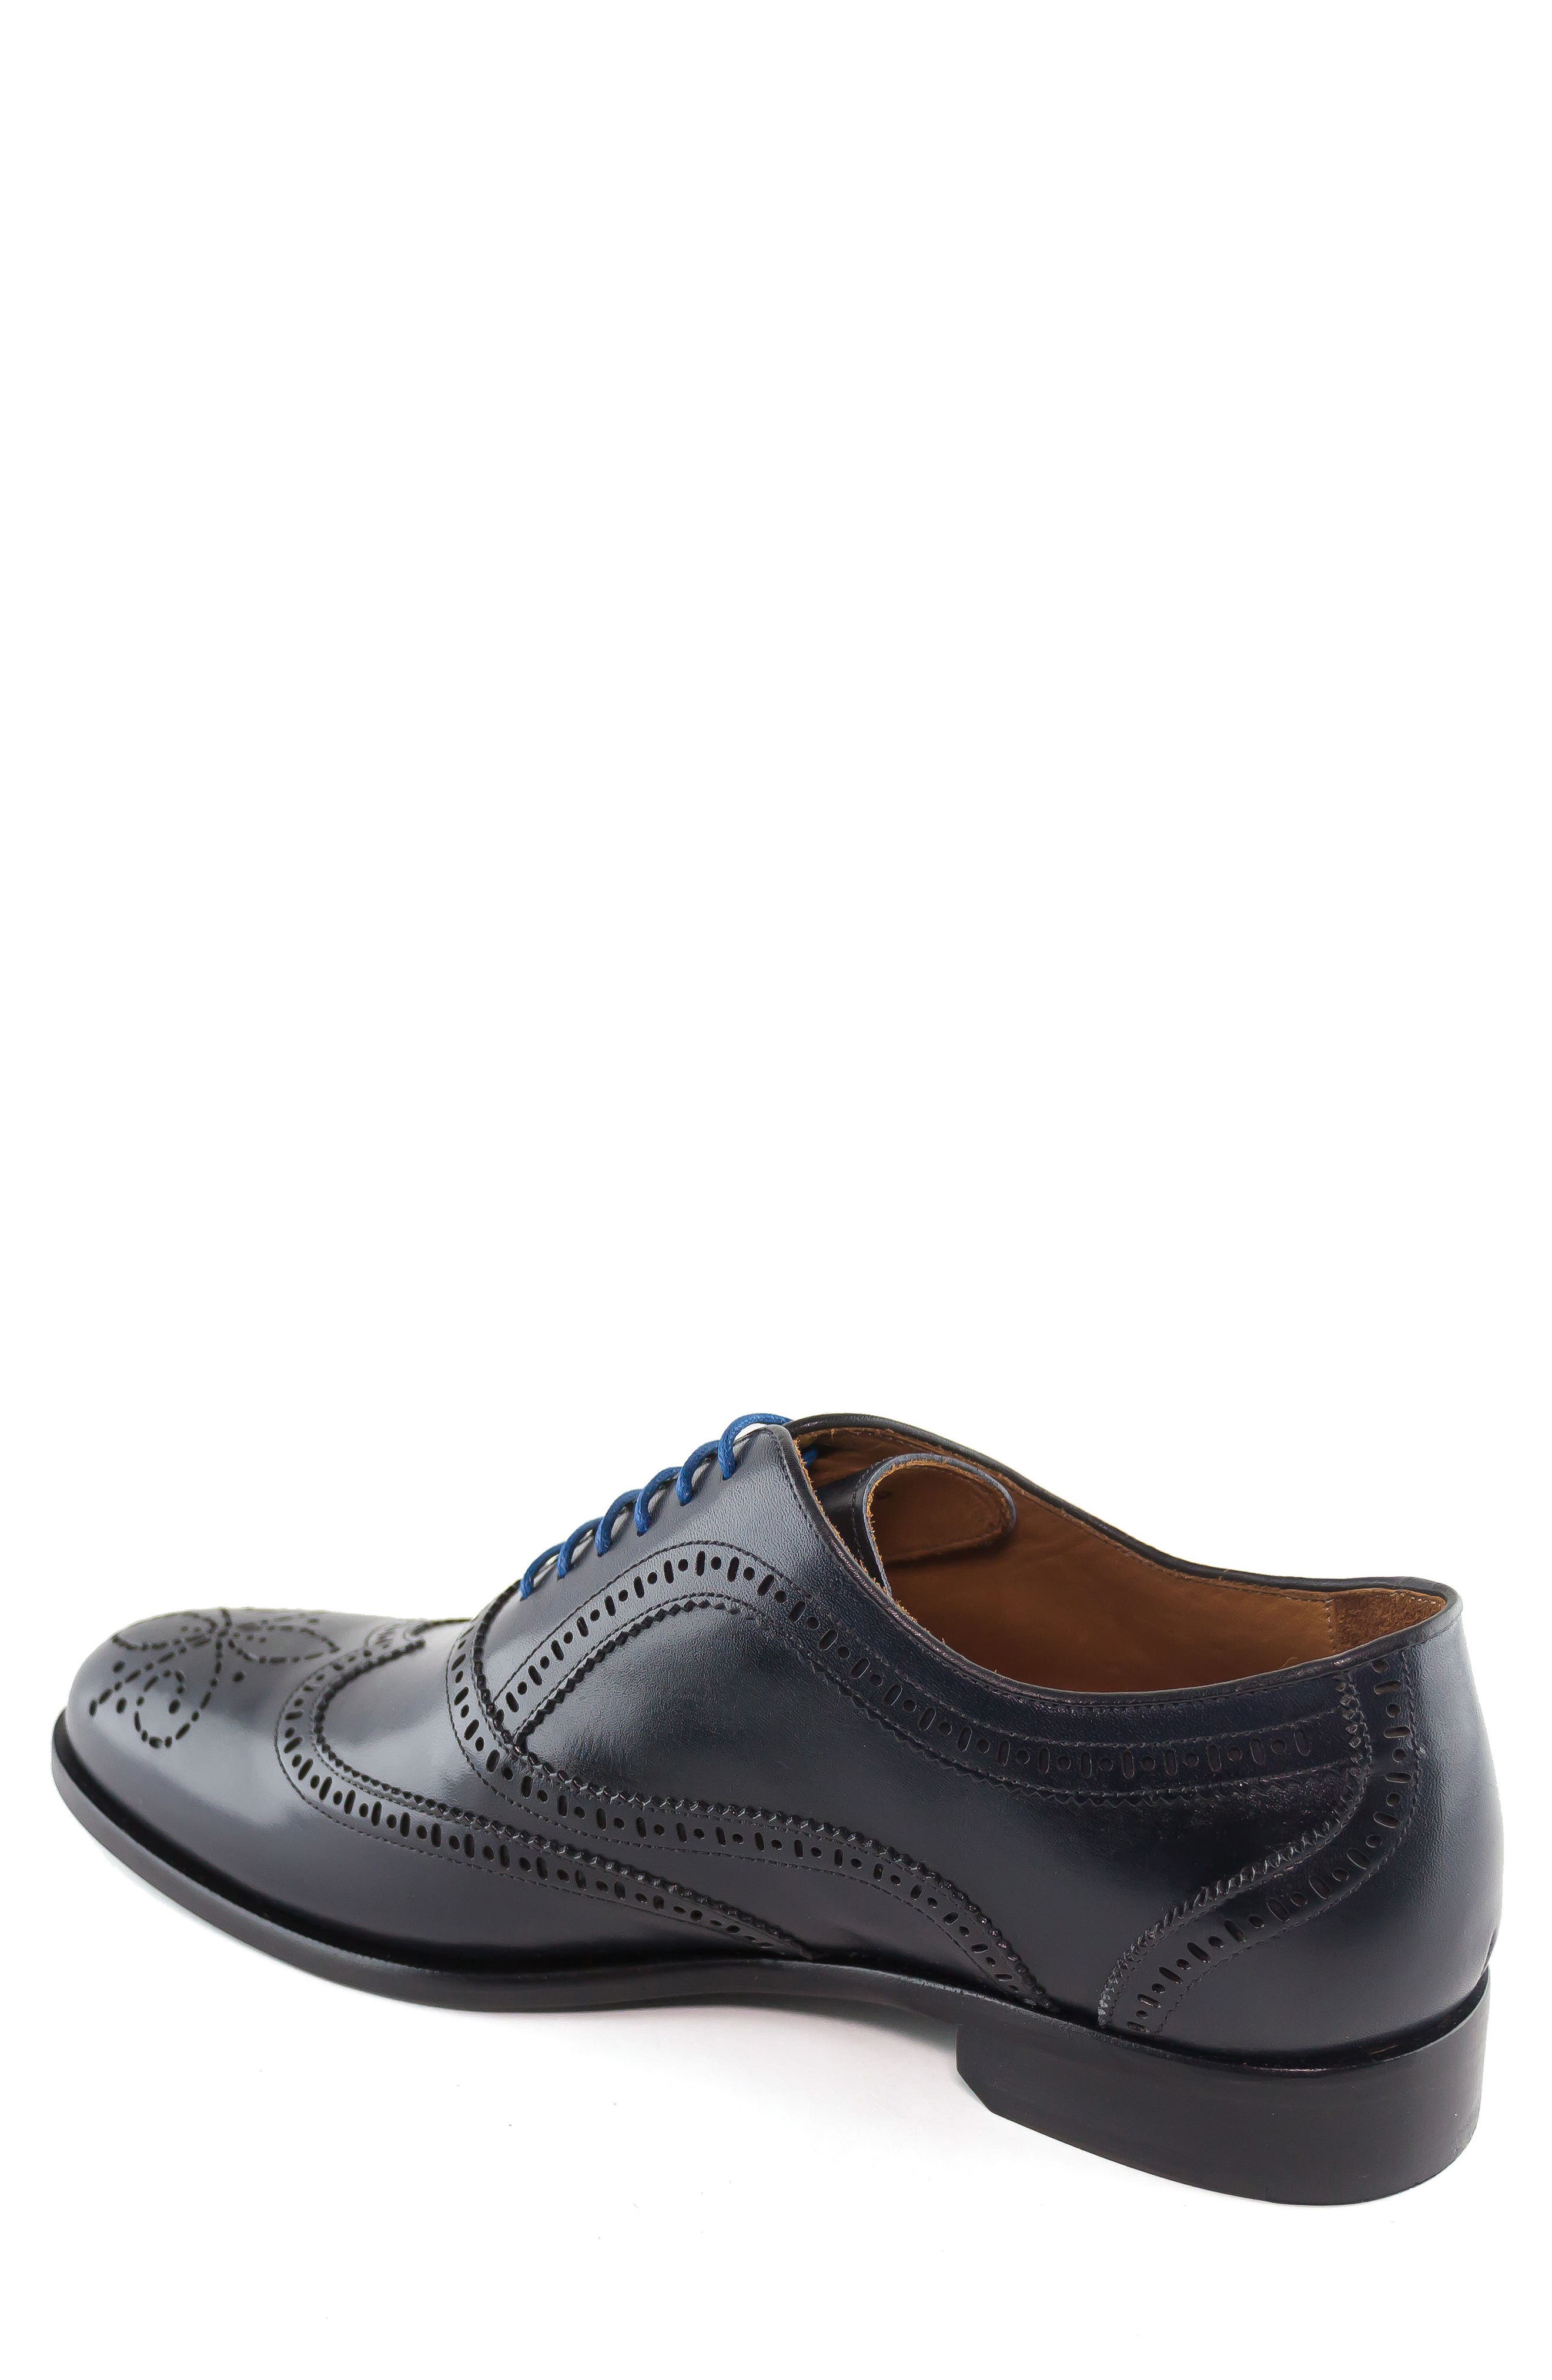 Madison Wingtip Oxford,                             Alternate thumbnail 2, color,                             Navy